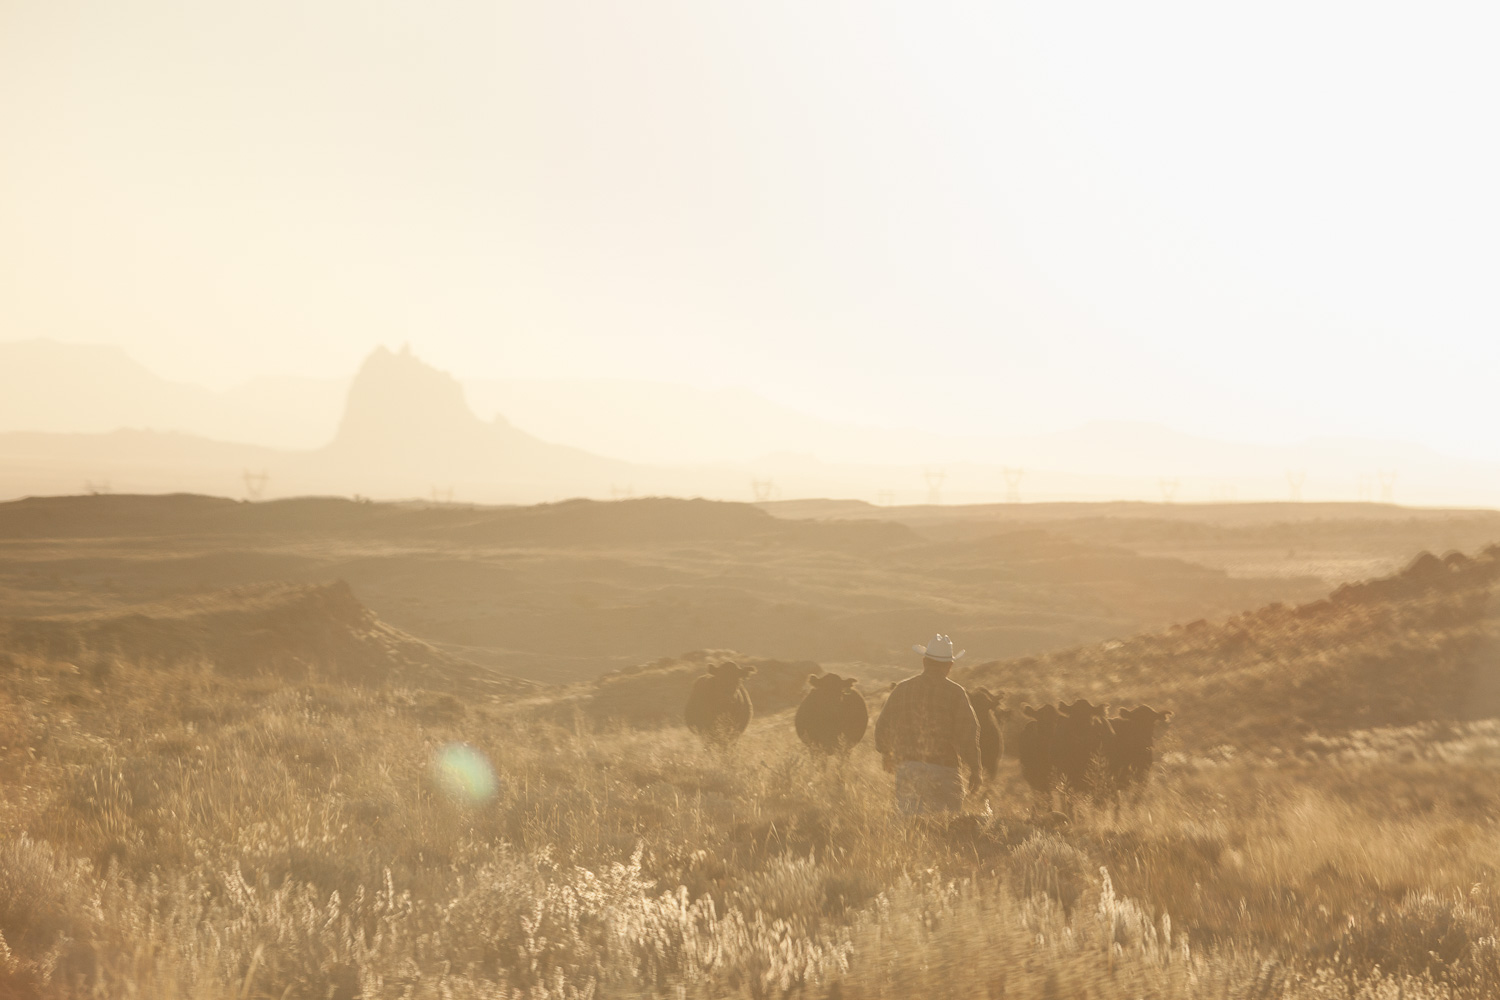 A rancher brings in some cattle that had been grazing on BLM land near Waterflow, NM. Shiprock rises out of the haze in the background.